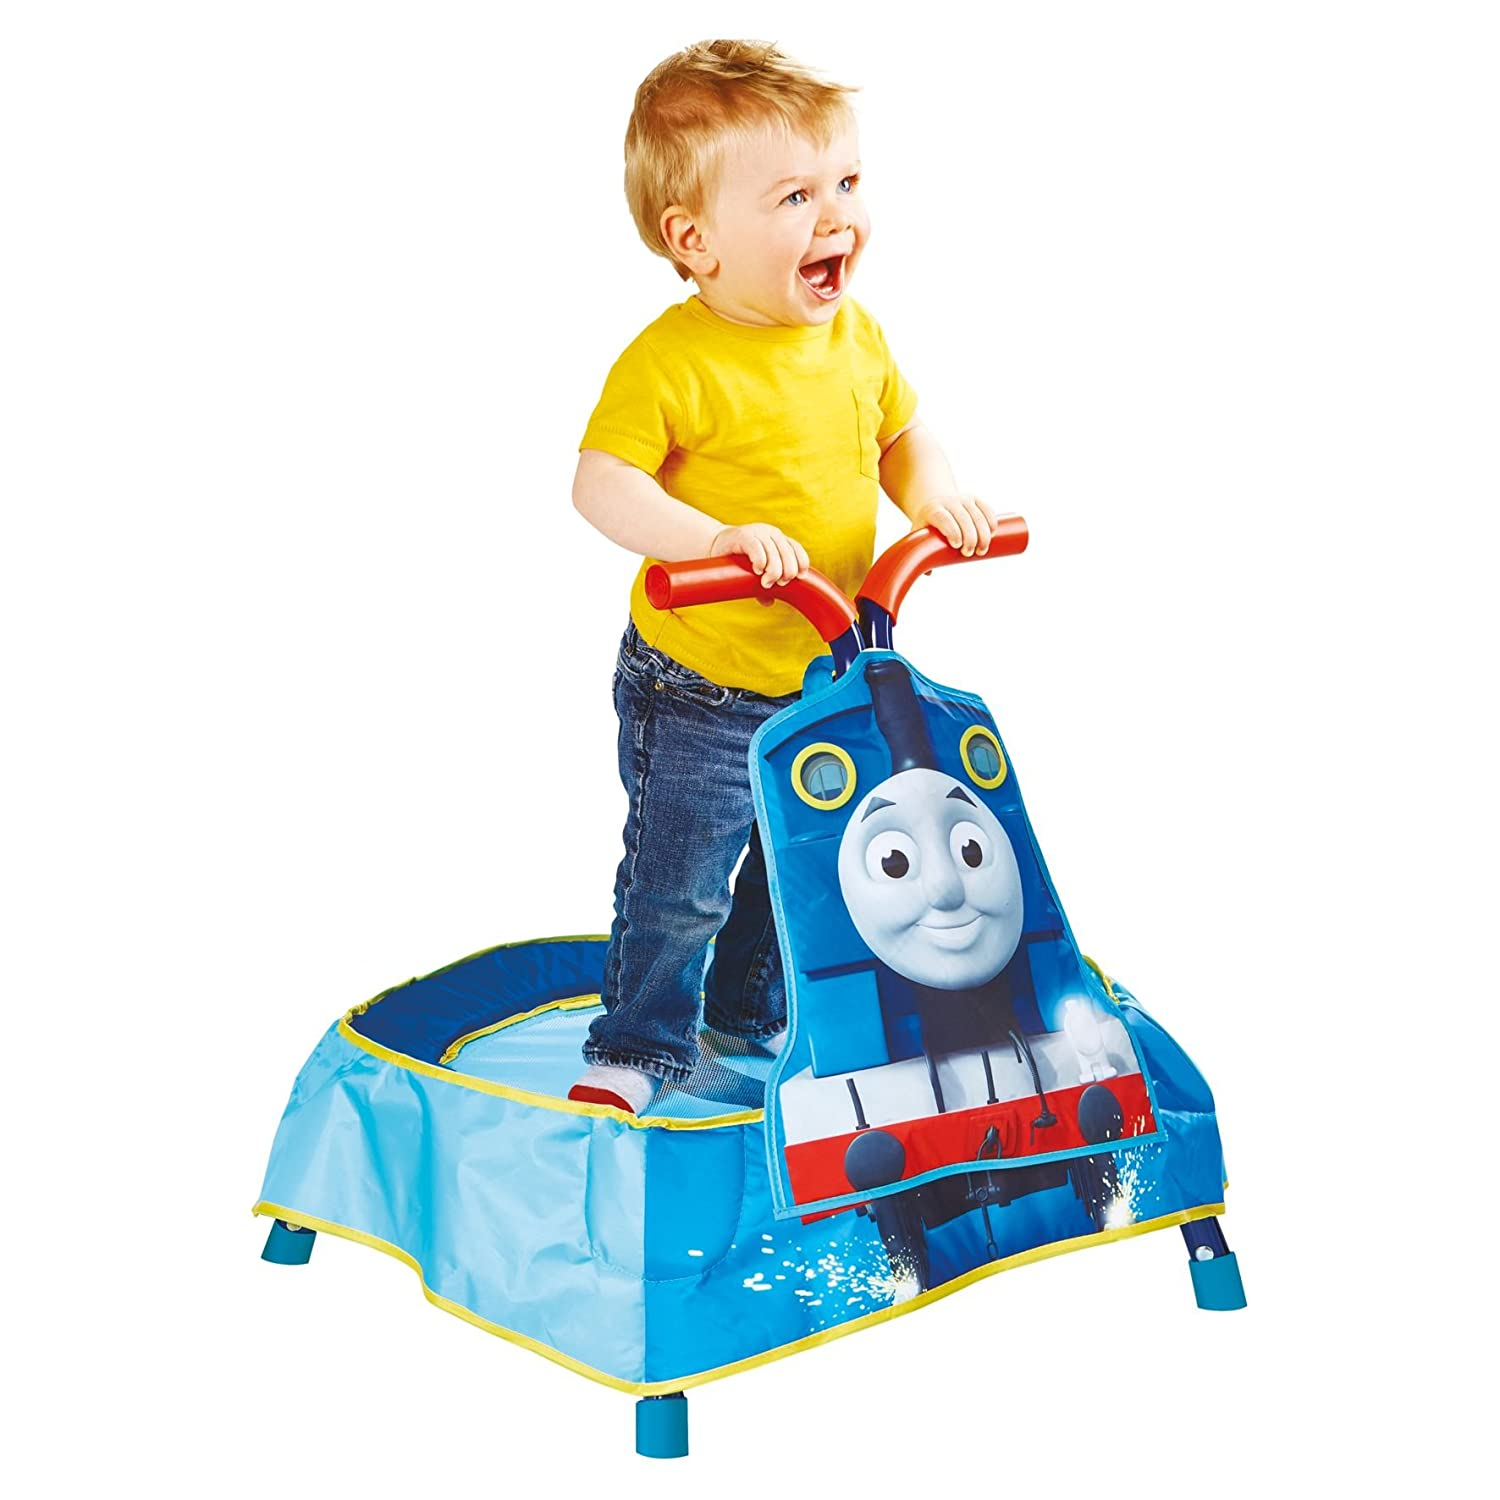 Kidactive 304tht Friends Thomas The Tank Engine Toddler